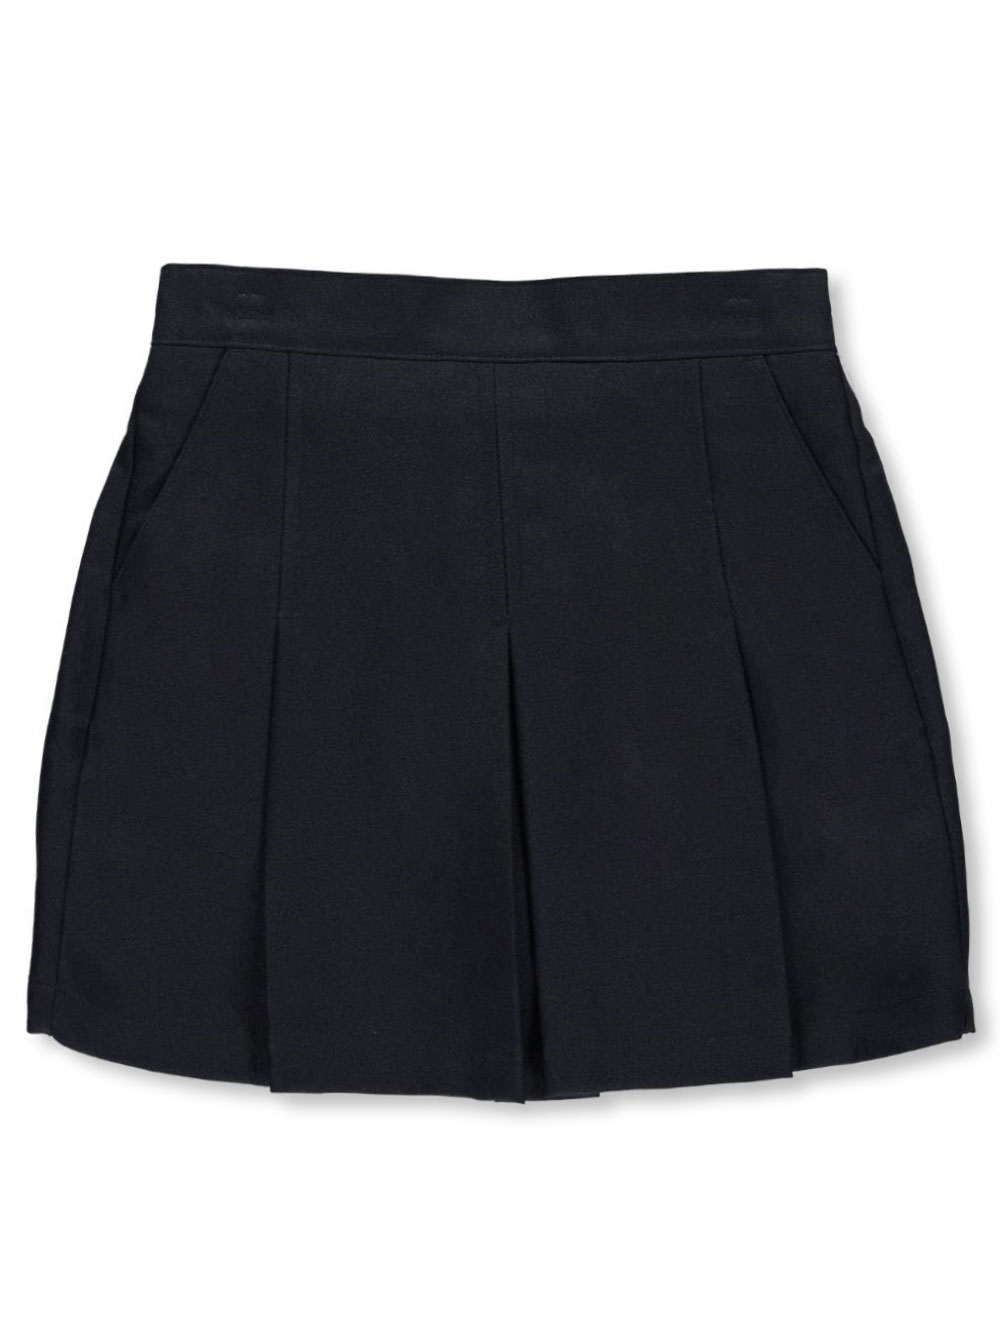 Size 12 Shorts for Girls